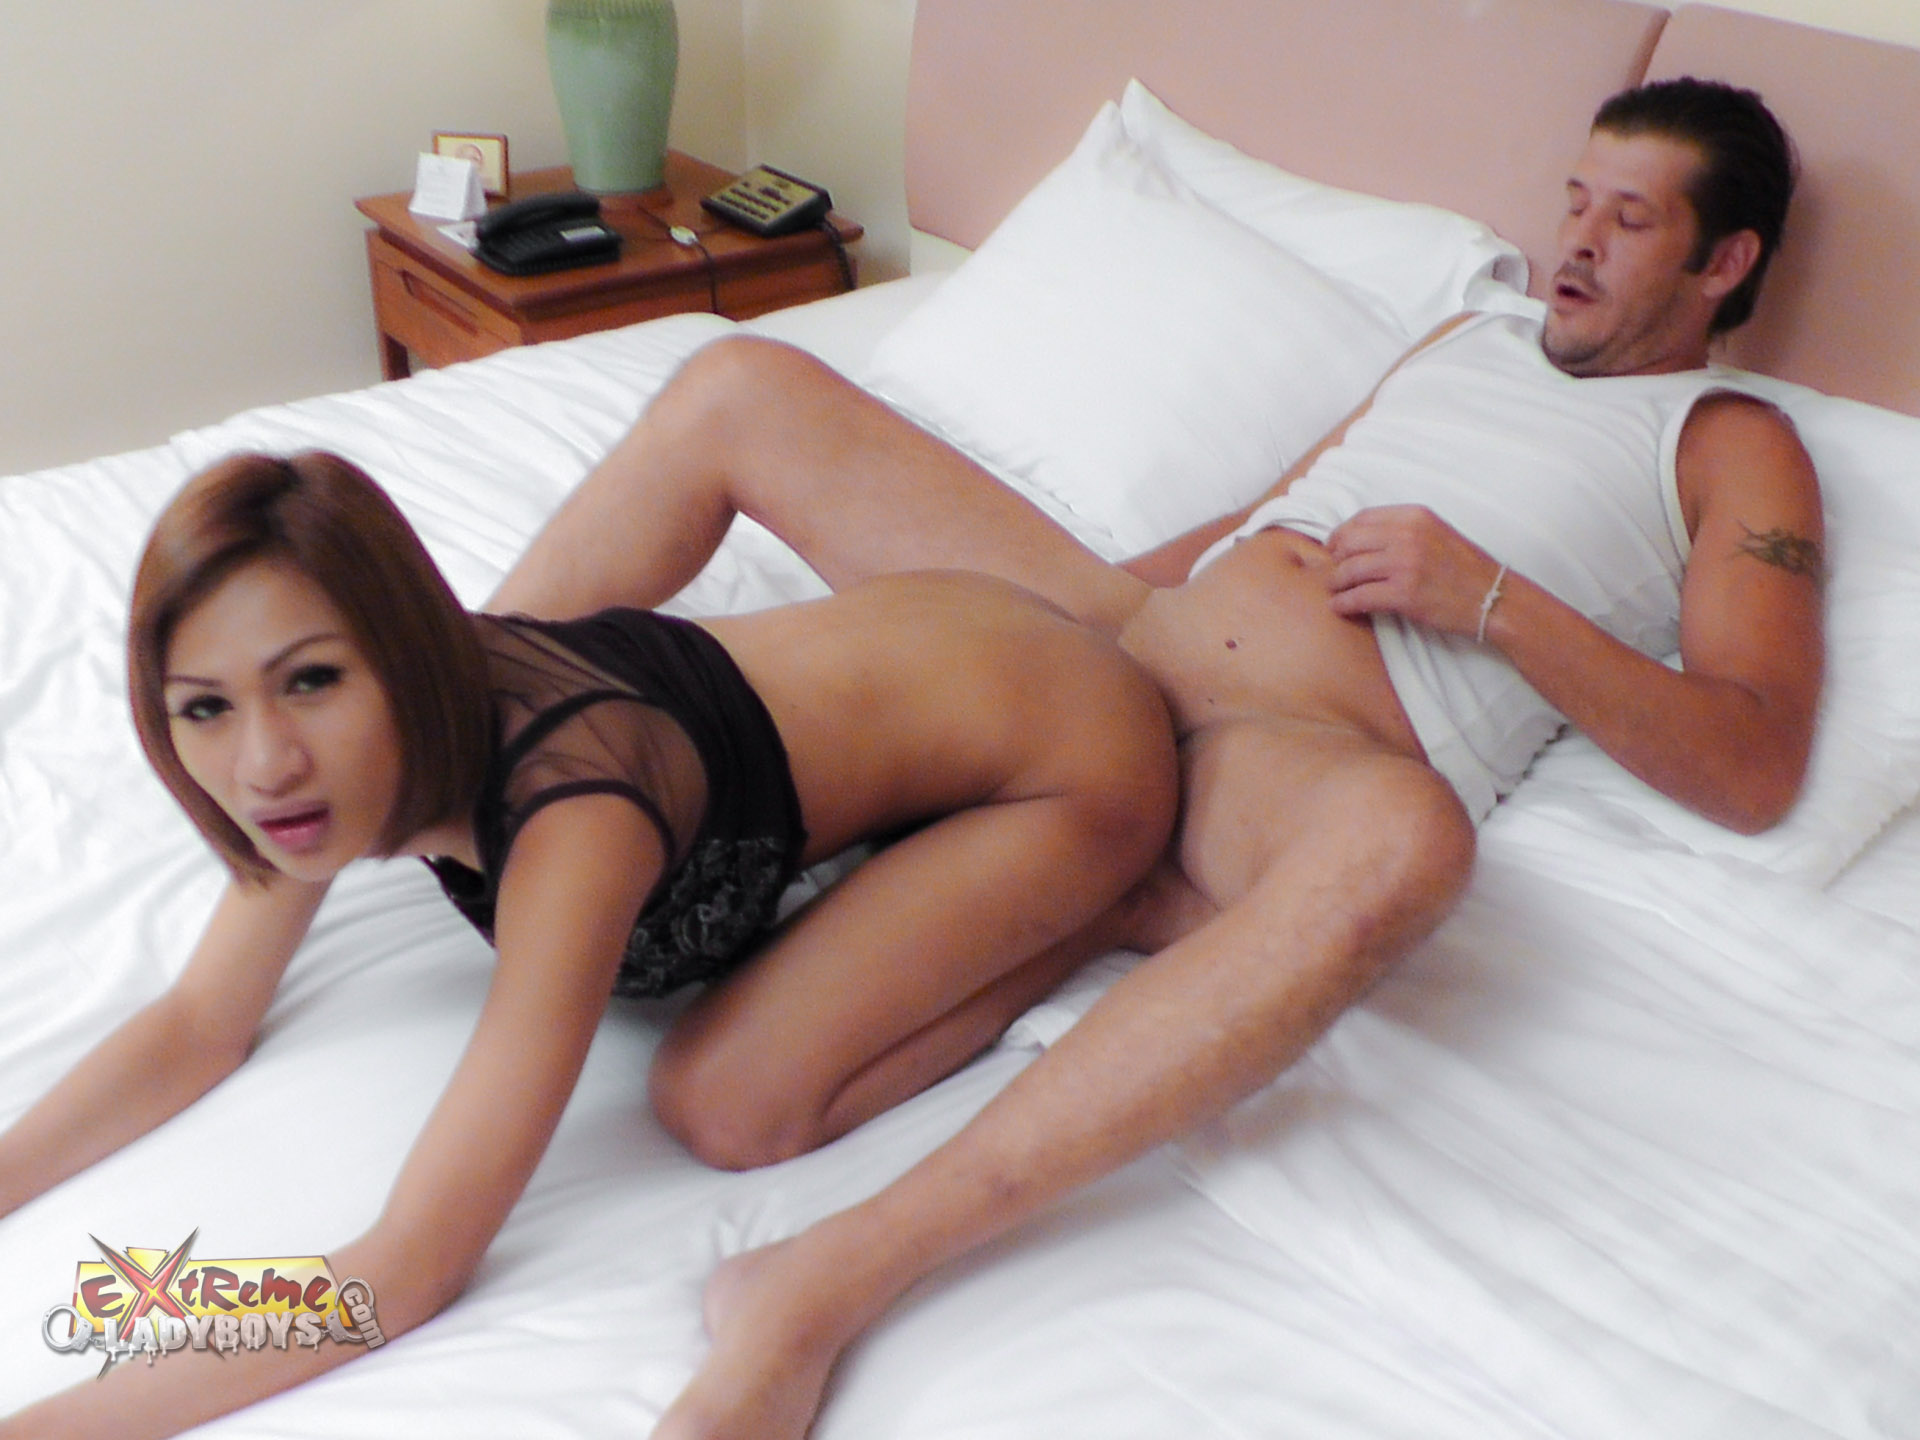 Asian ladyboy sex pictures